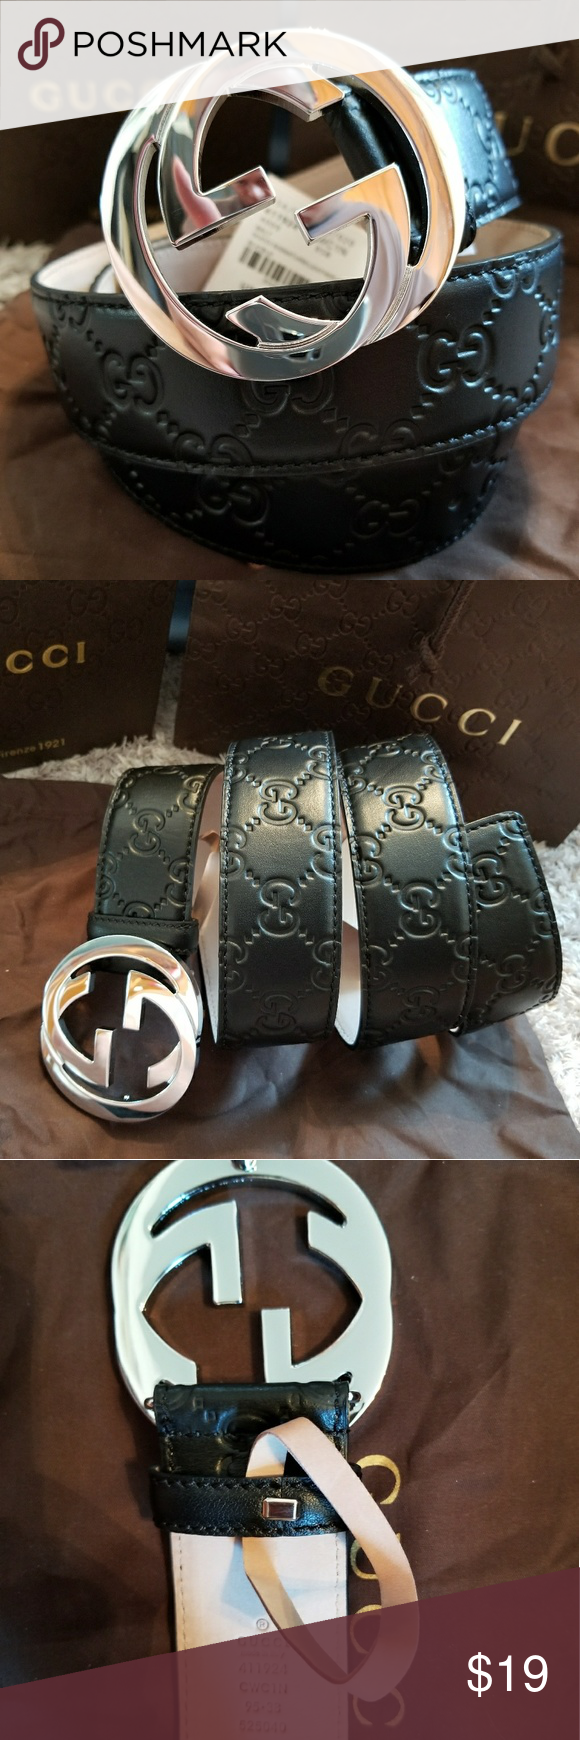 ff91479d61f 😎Authentic Gucci Belt Red Guccissima Supreme 😎Authentic Gucci Belt Red  Guccissima Supreme Print with Silver GG Buckle. -Comes with tags